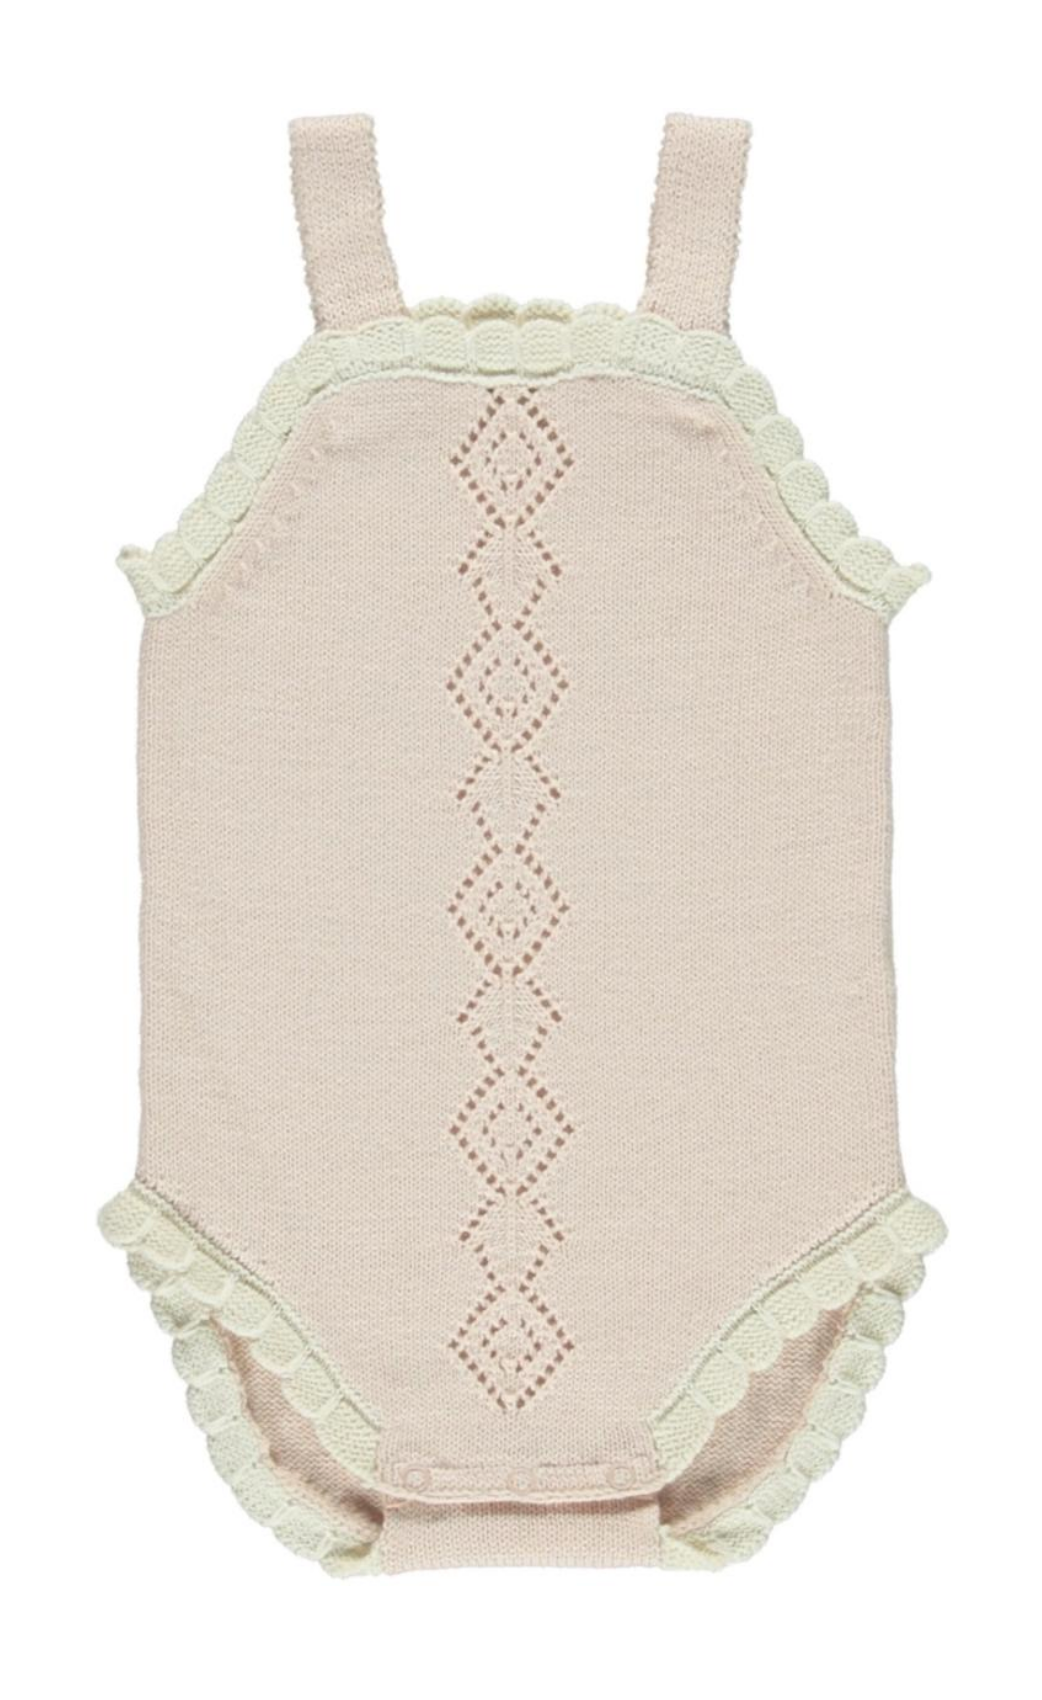 Fin and Vince - Scallop Onesie (Blush)